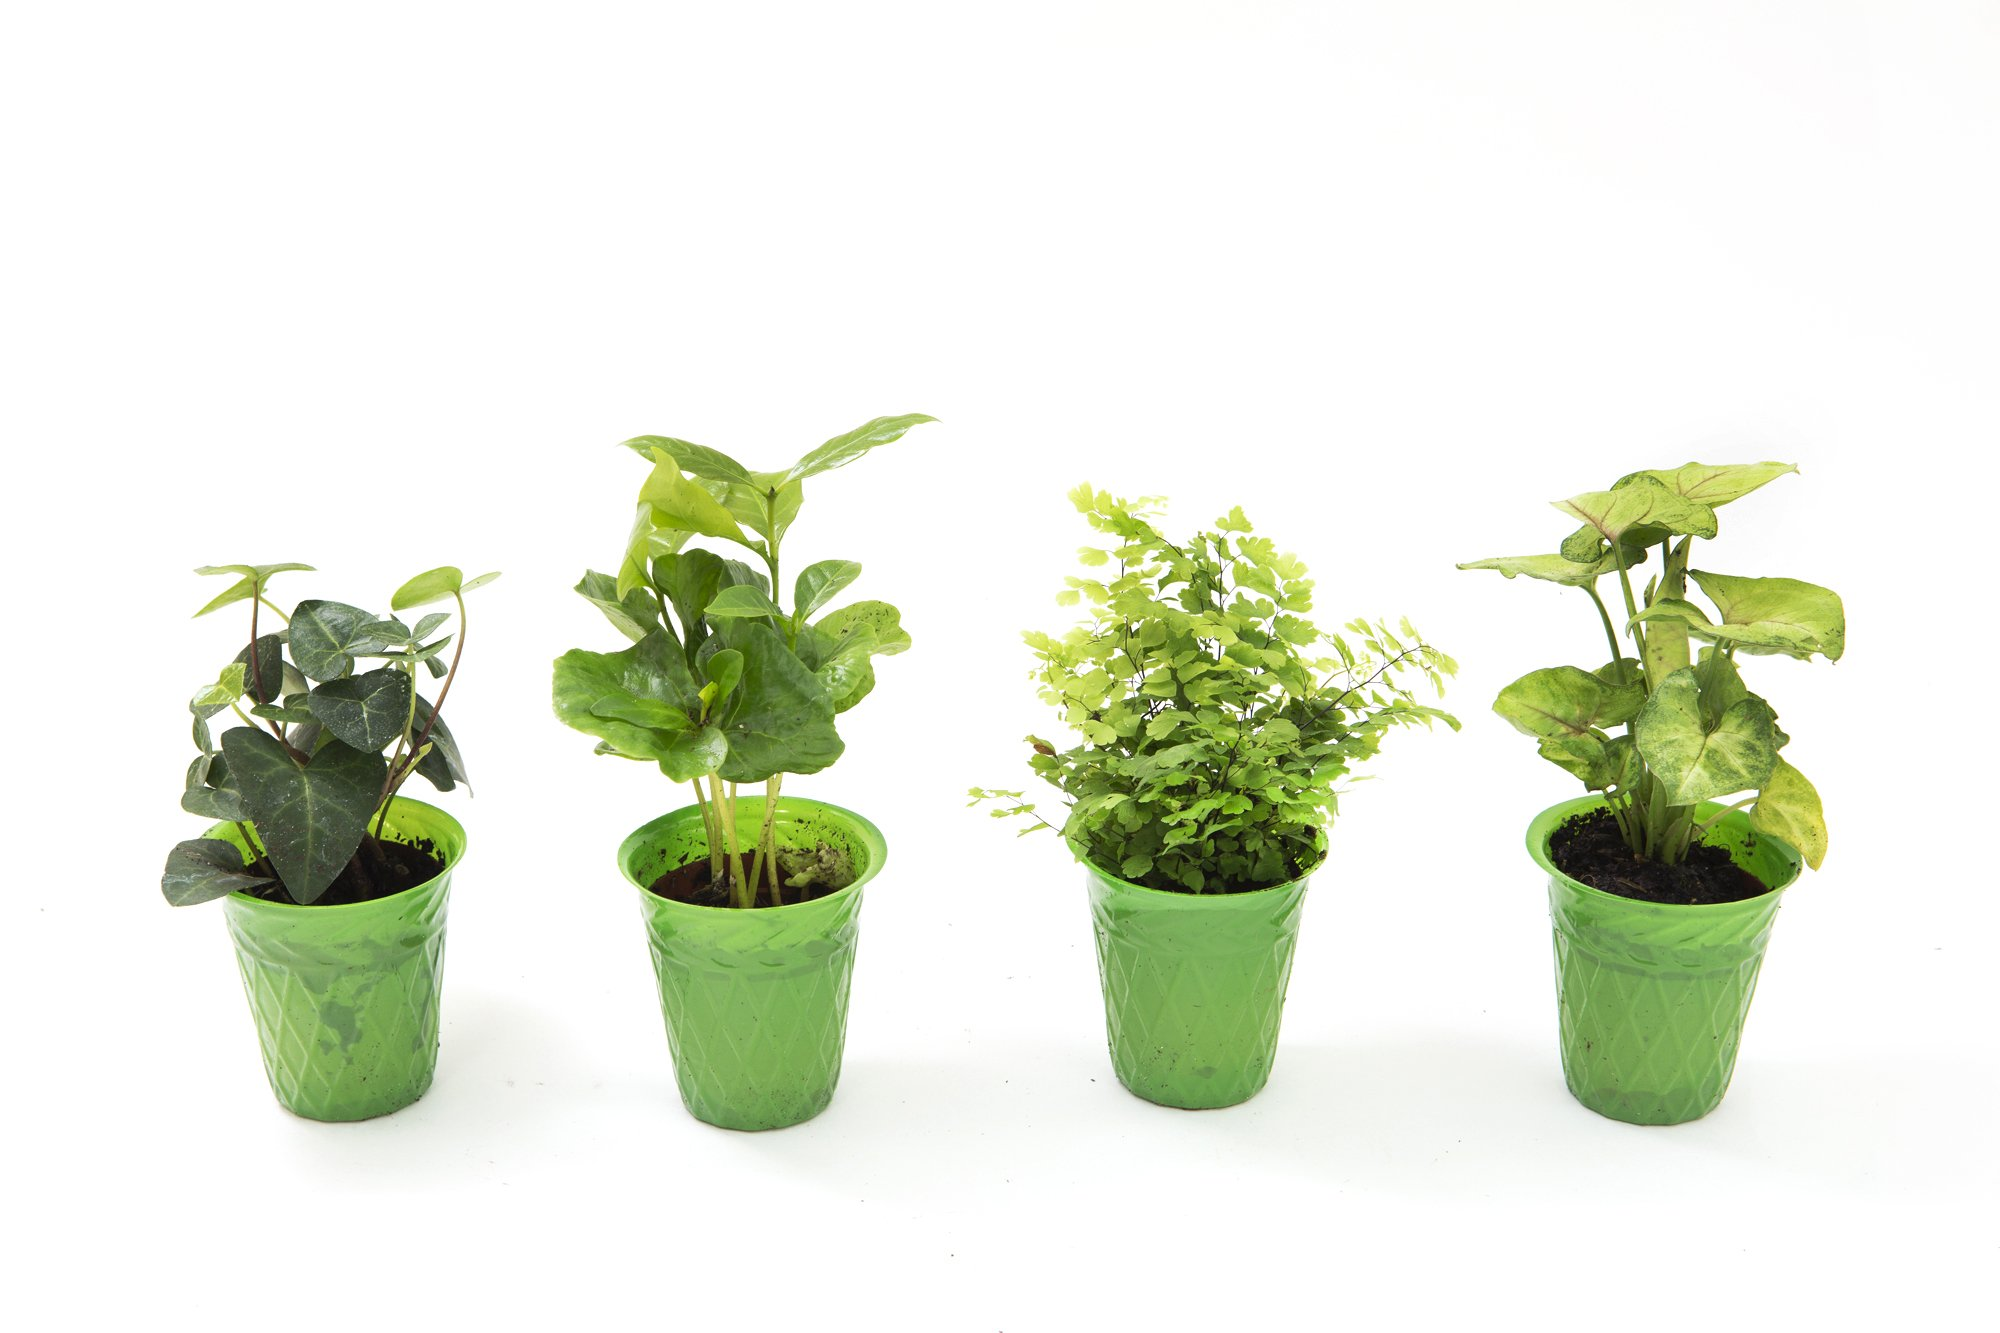 KaBloom Live Plant Collection: Set of 4 Foliage Plants in a 3-inch Green Plastic Pot - Ivy, Coffee Plant, Fern, & Nephthytis Plant